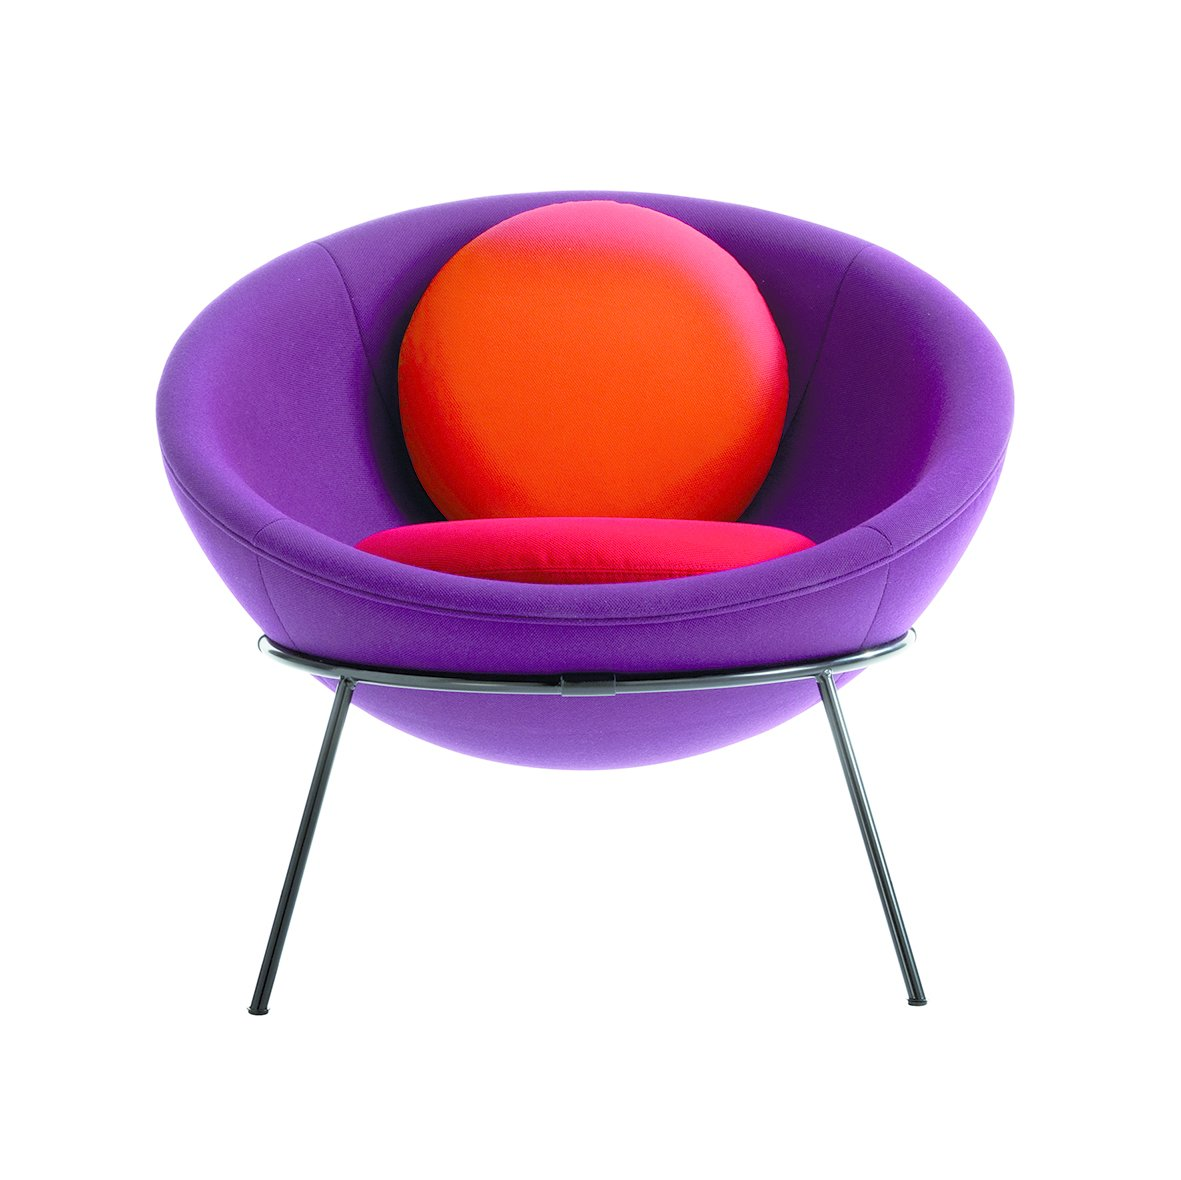 Living Room and Chair  Photo 9 of 11 in Modern Master Lina Bo Bardi's Bowl Chair Makes a Comeback